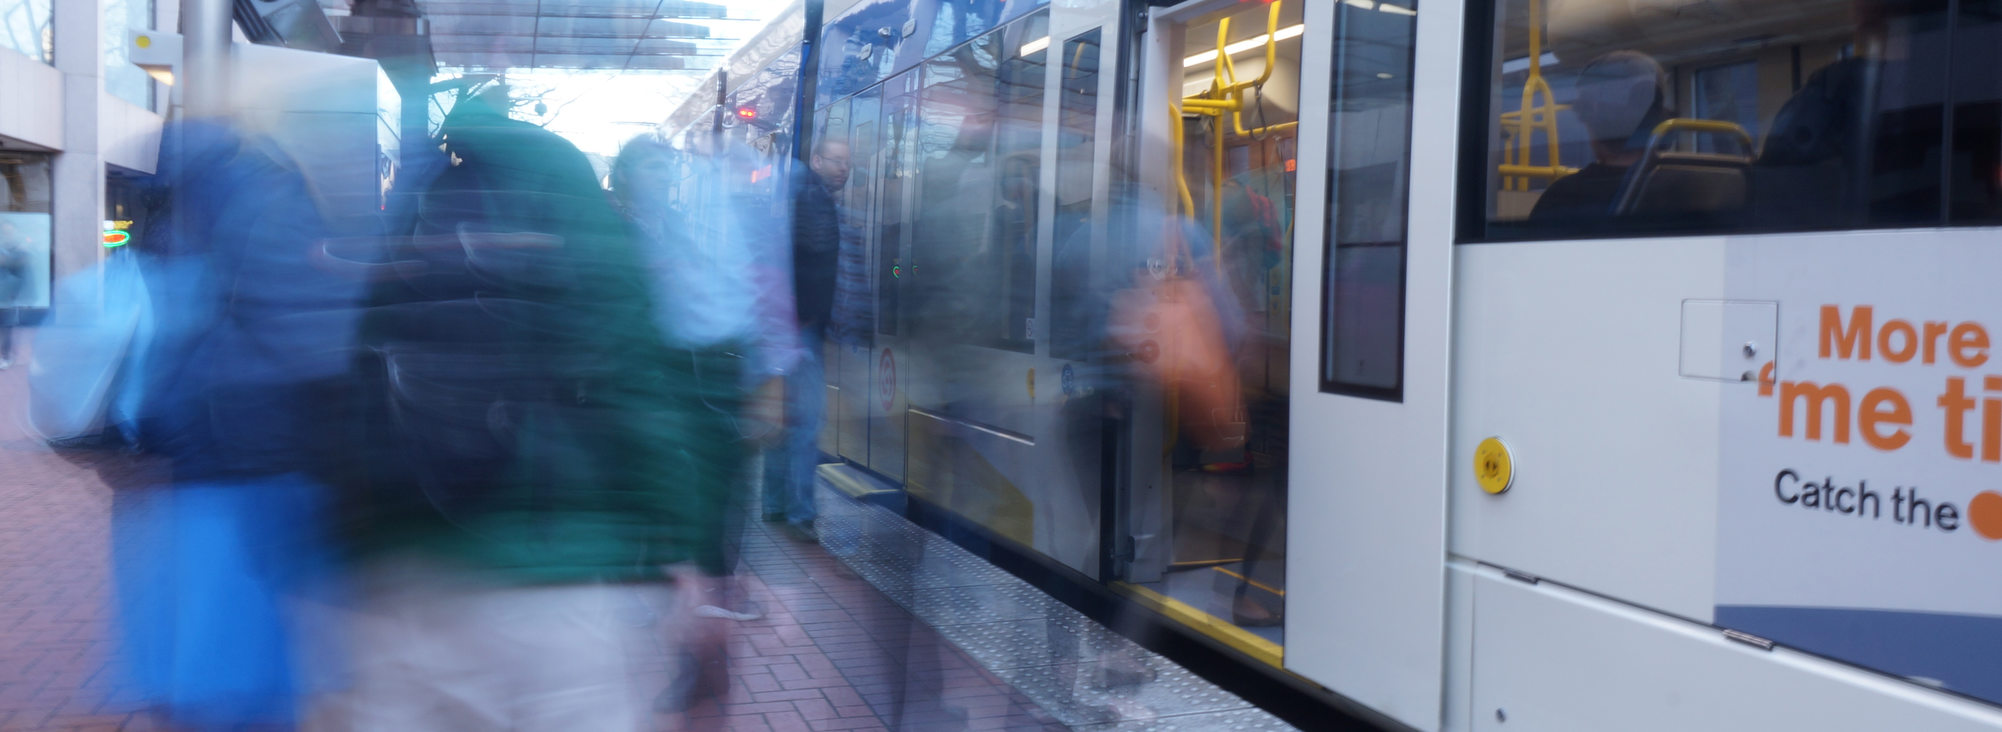 Blurry photo of people getting on light rail